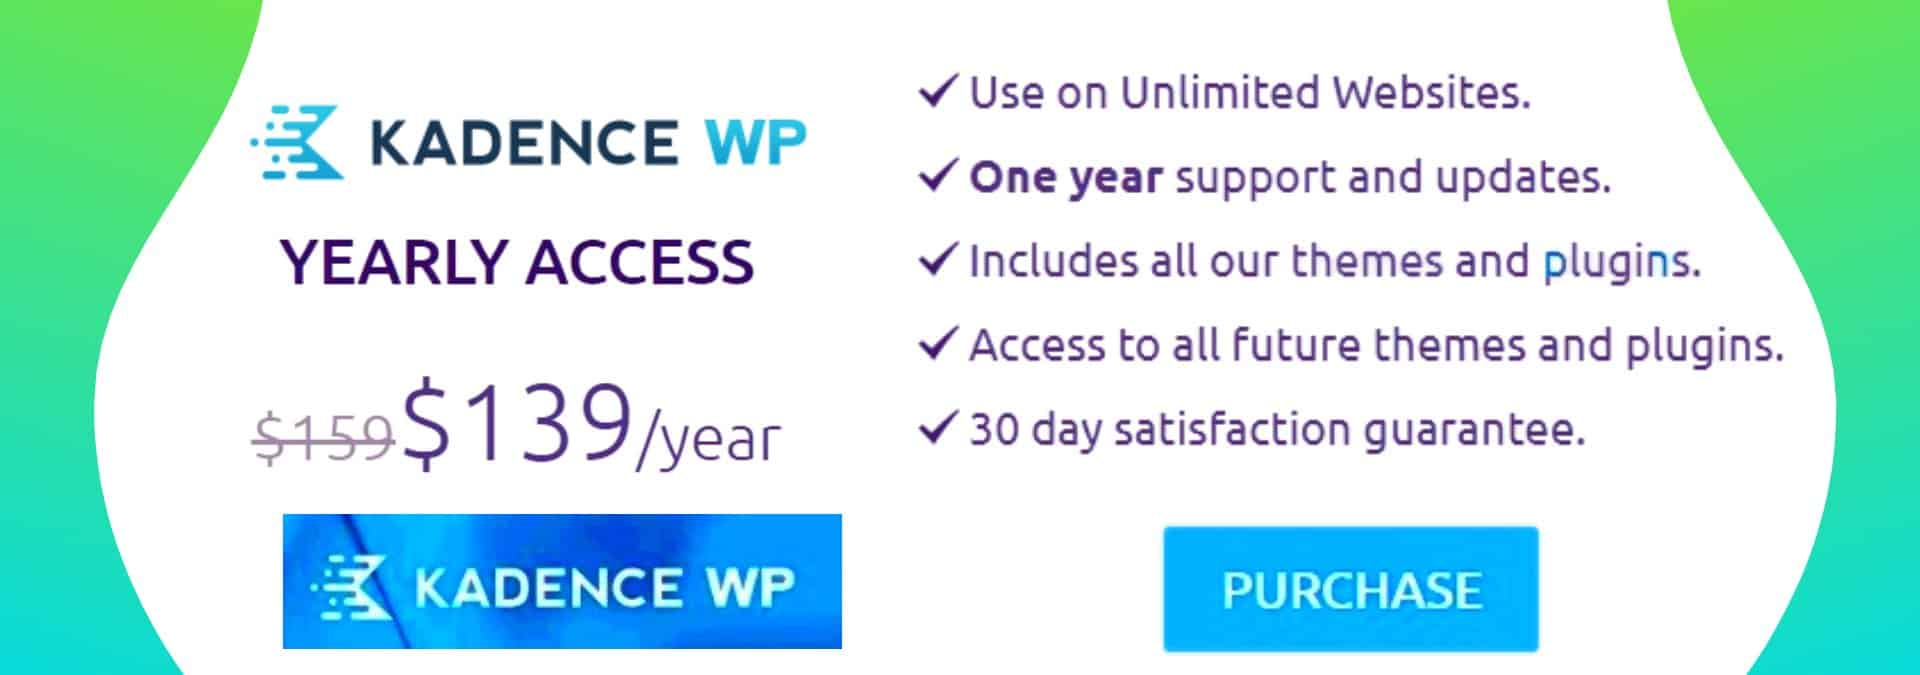 Kadencewp Membership Offer